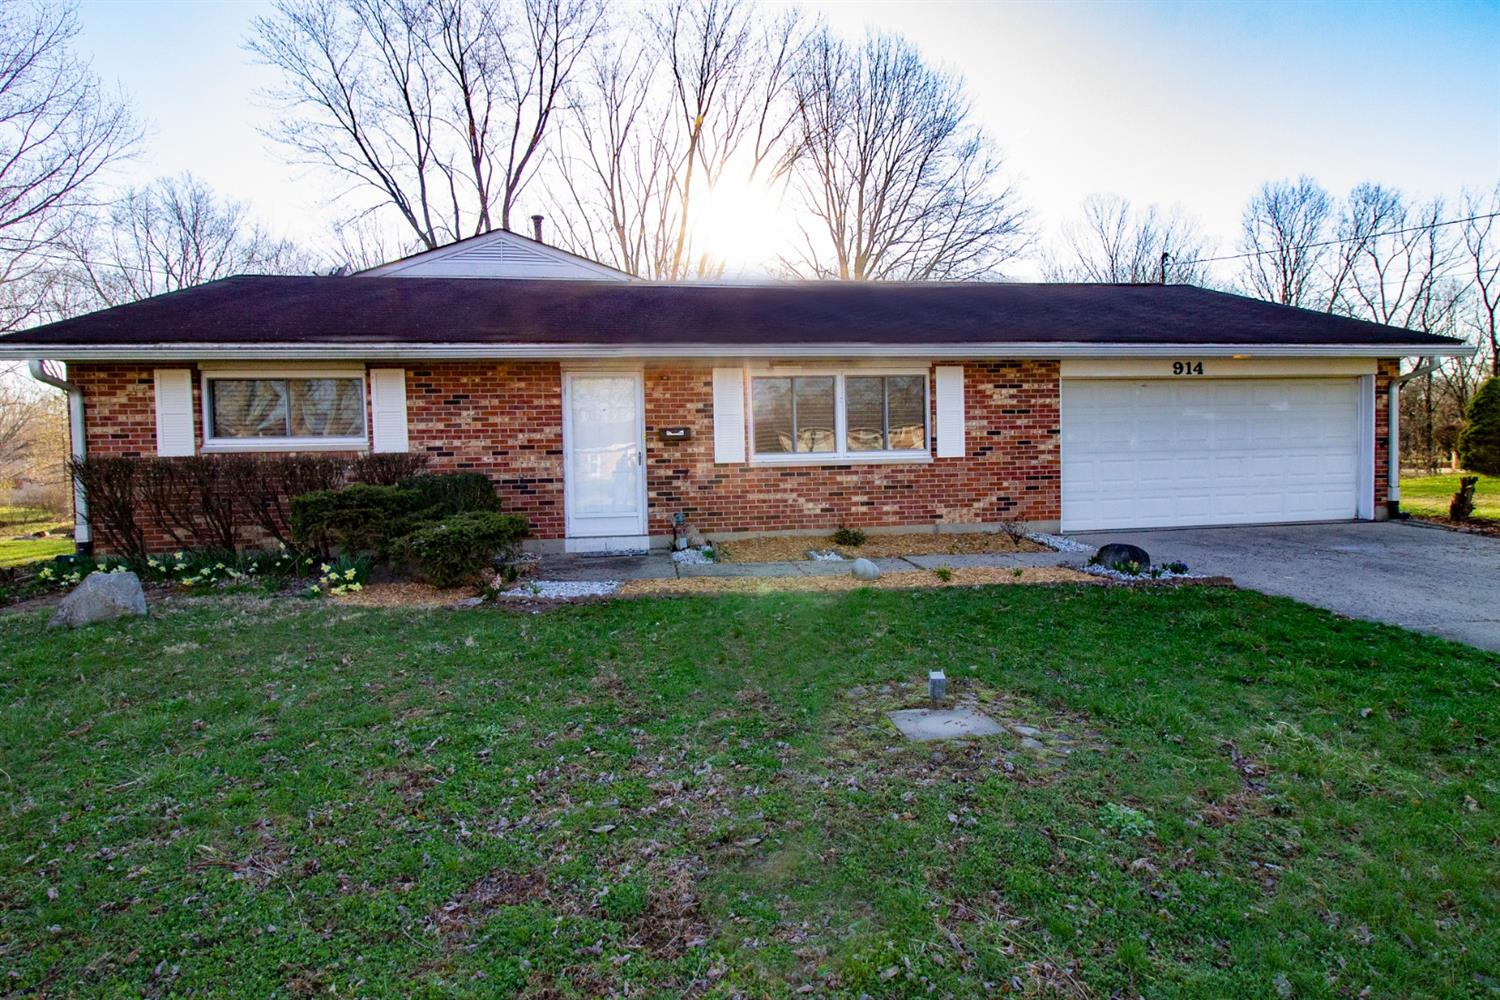 Property for sale at 914 Evelyn Court, Lebanon,  Ohio 45036